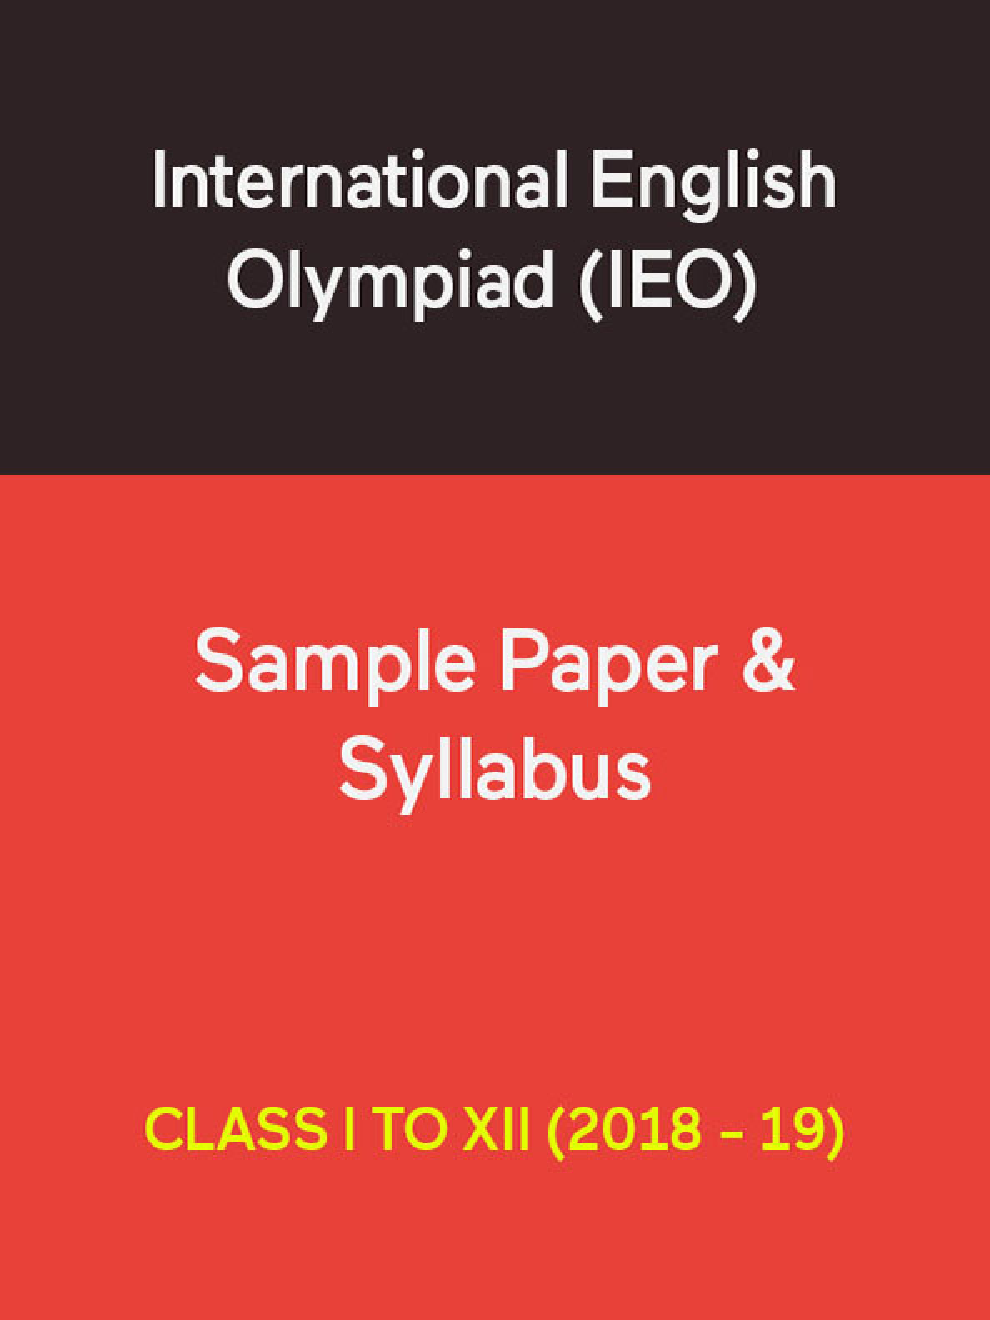 International English Olympiad (IEO) Sample Paper & Syllabus For Class I To XII (2018 - 19) - Page 1